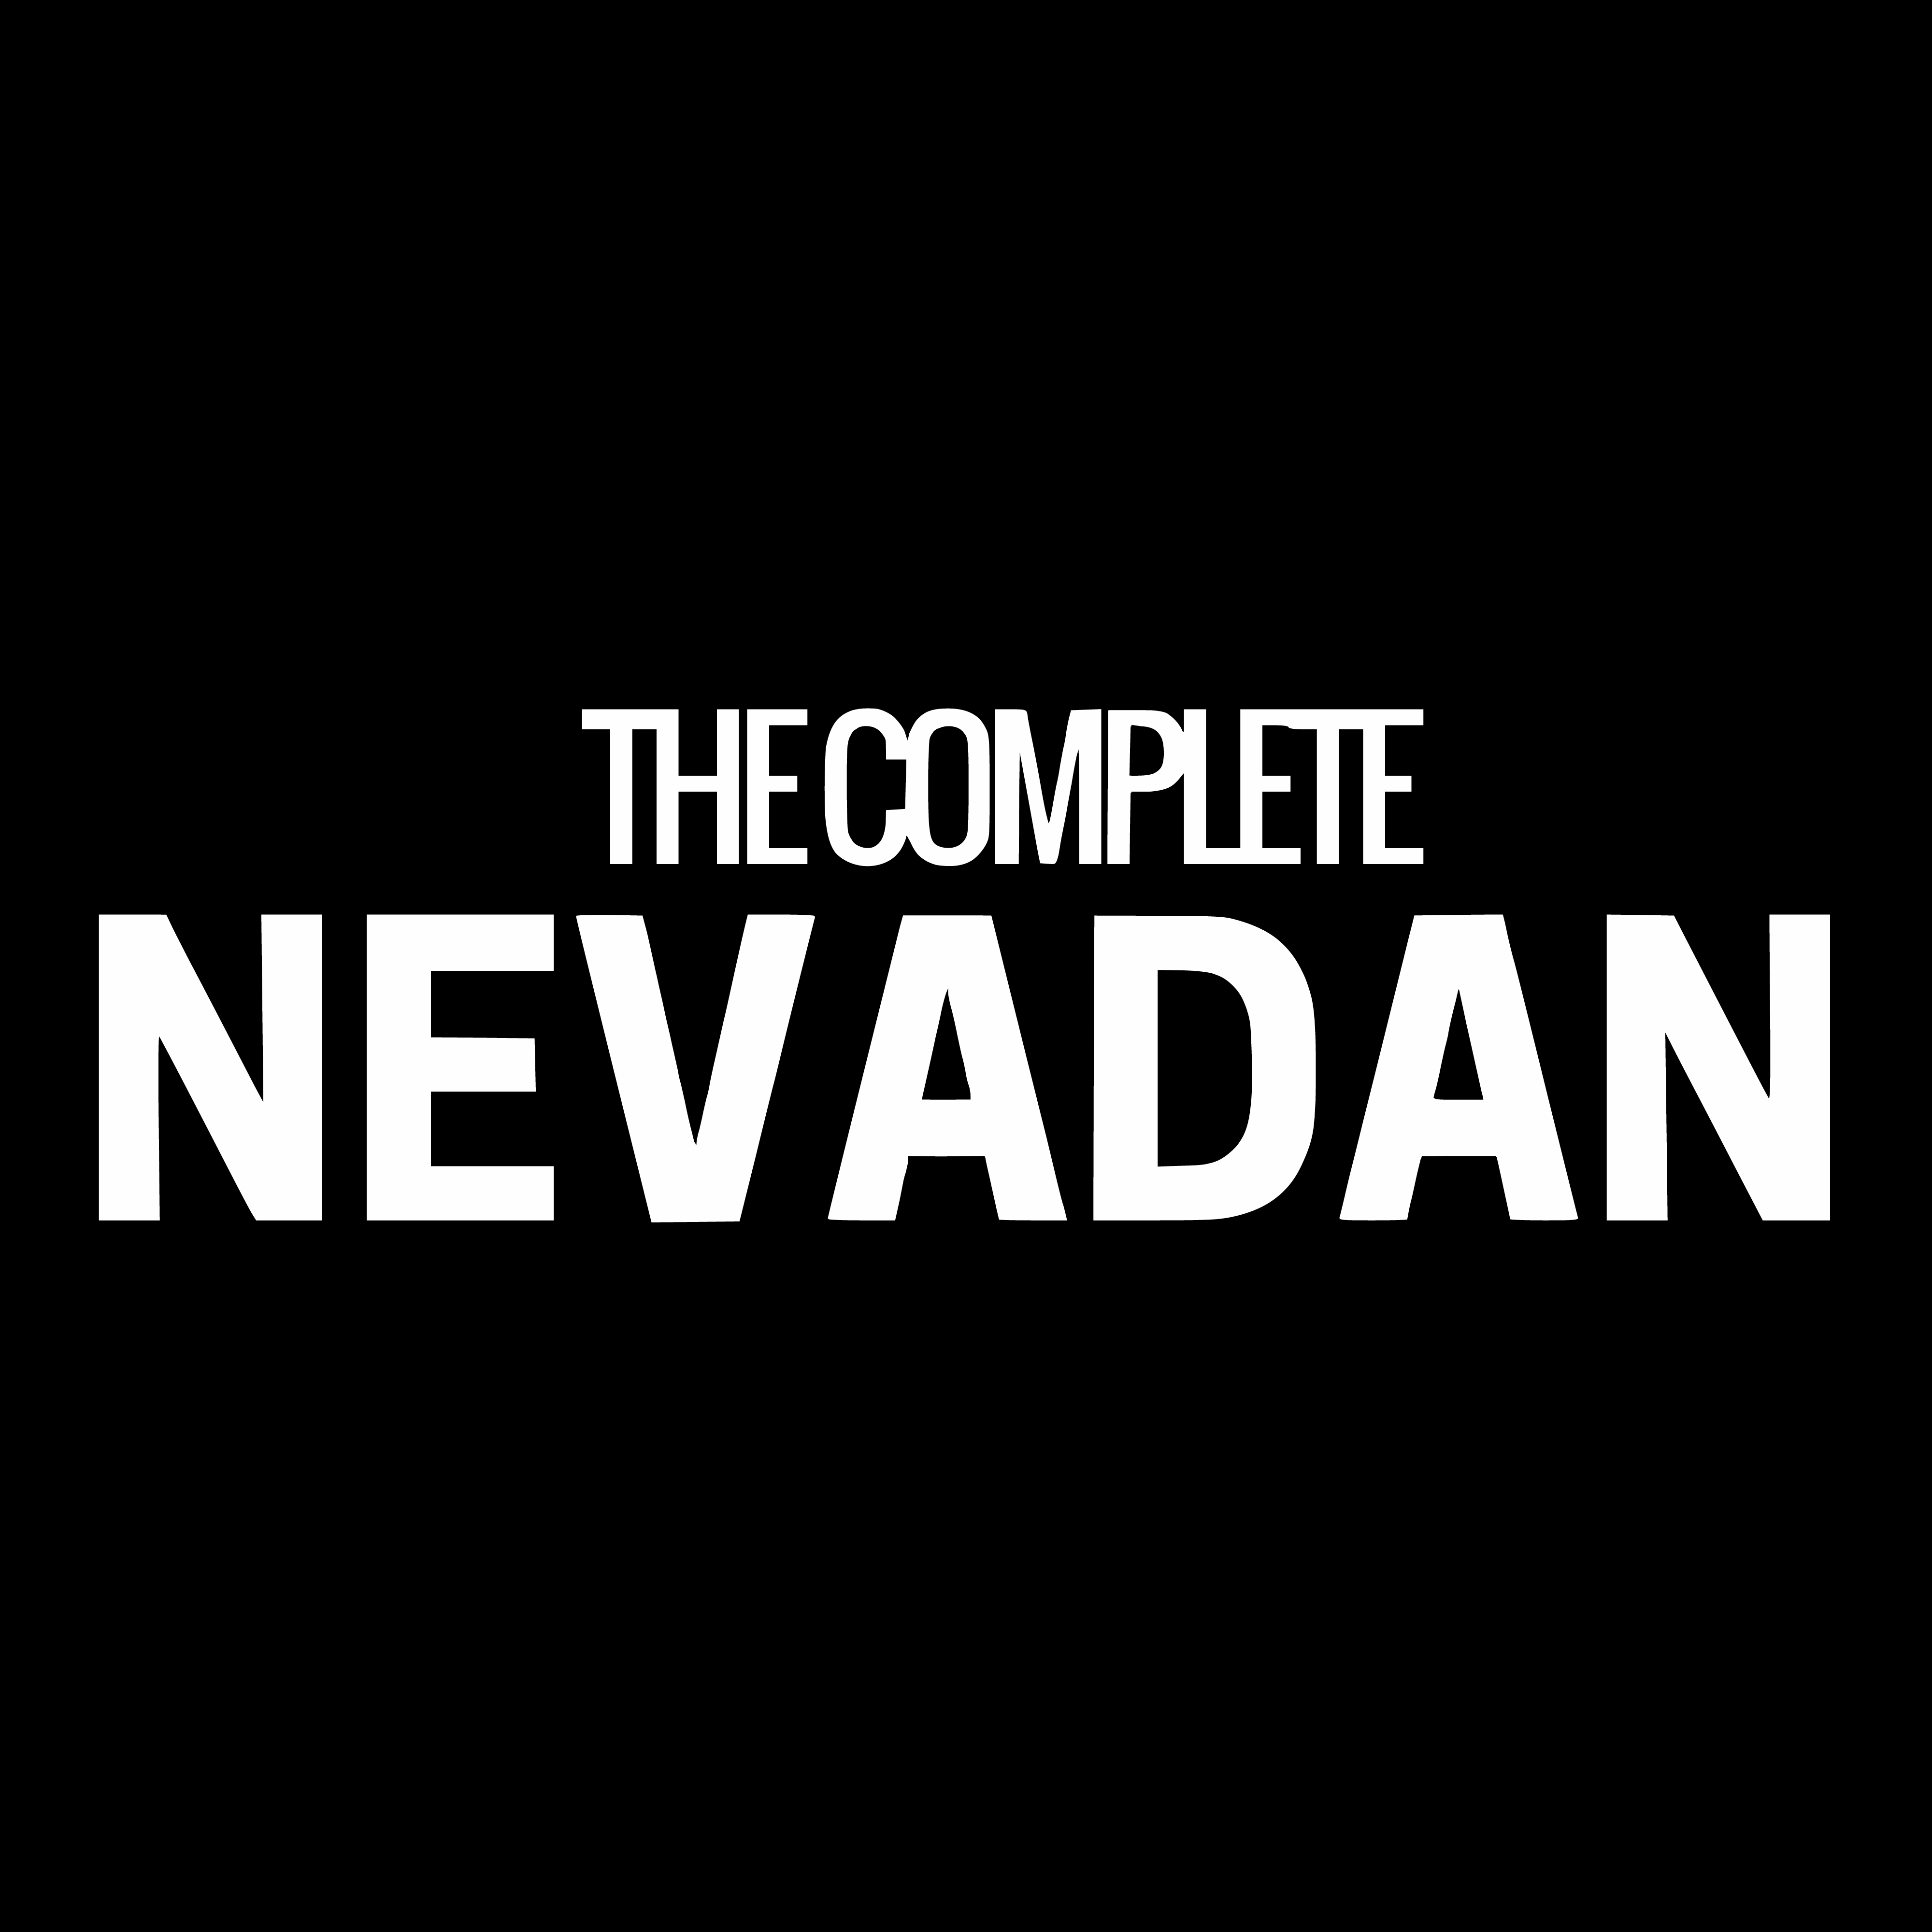 The Complete Nevadan